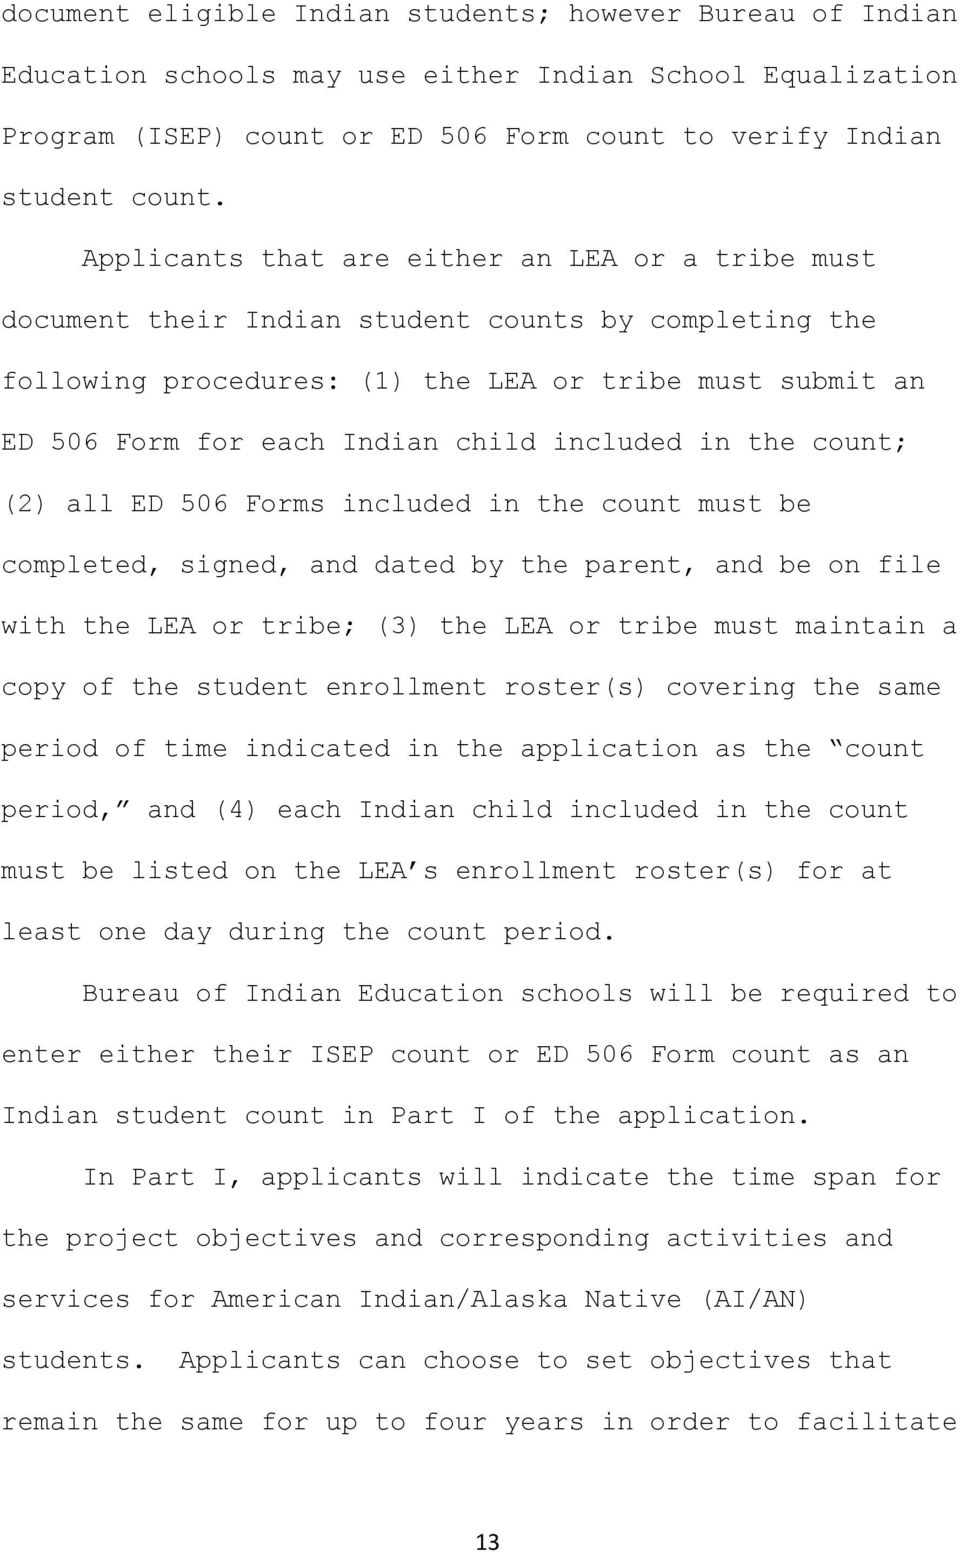 included in the count; (2) all ED 506 Forms included in the count must be completed, signed, and dated by the parent, and be on file with the LEA or tribe; (3) the LEA or tribe must maintain a copy